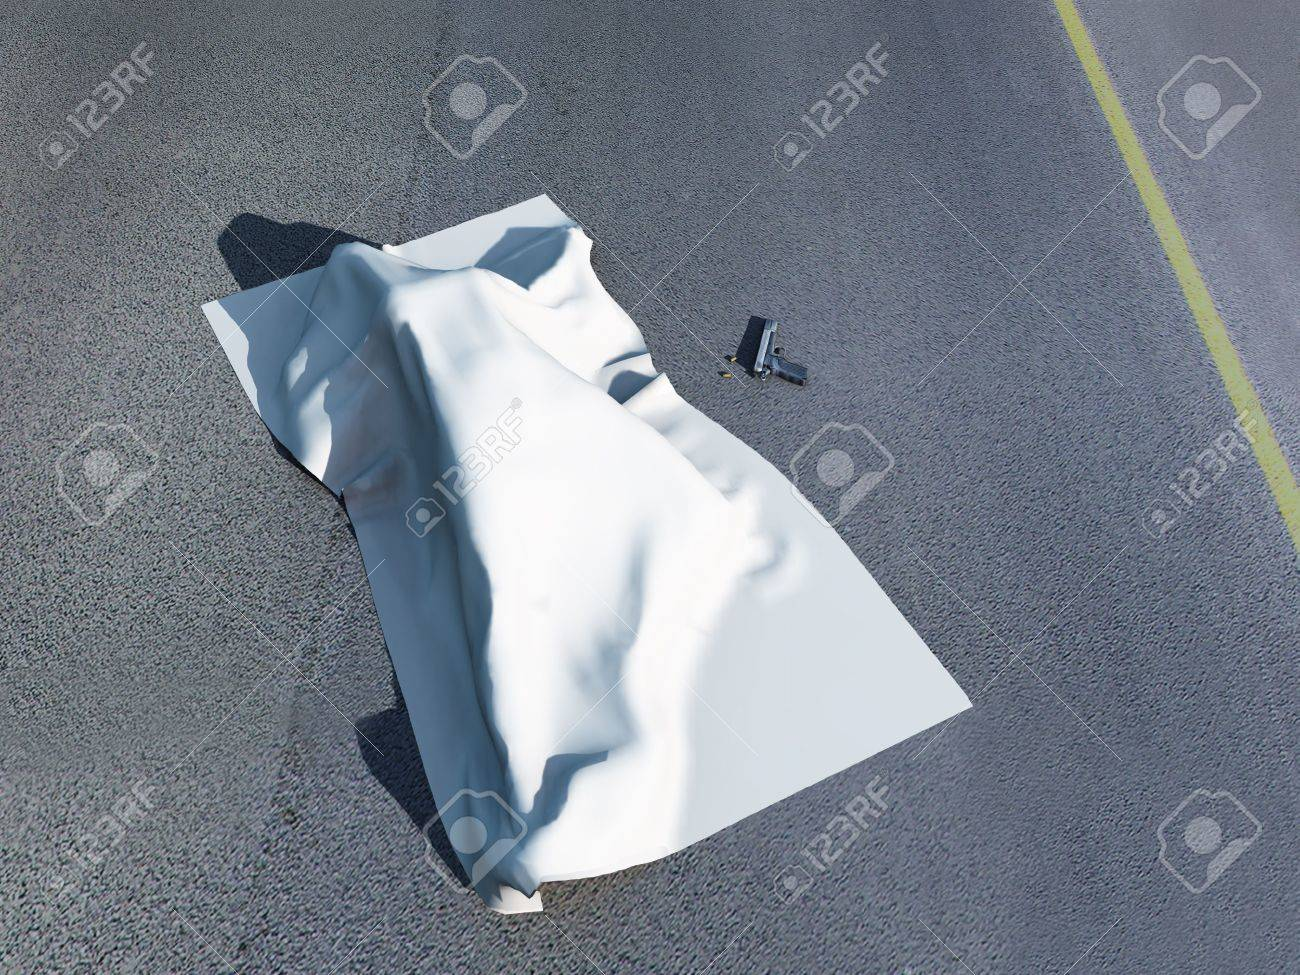 3d rendering of a murder scene with a dead body under a homicide cloth with a gun beside it. Stock Photo - 4636541